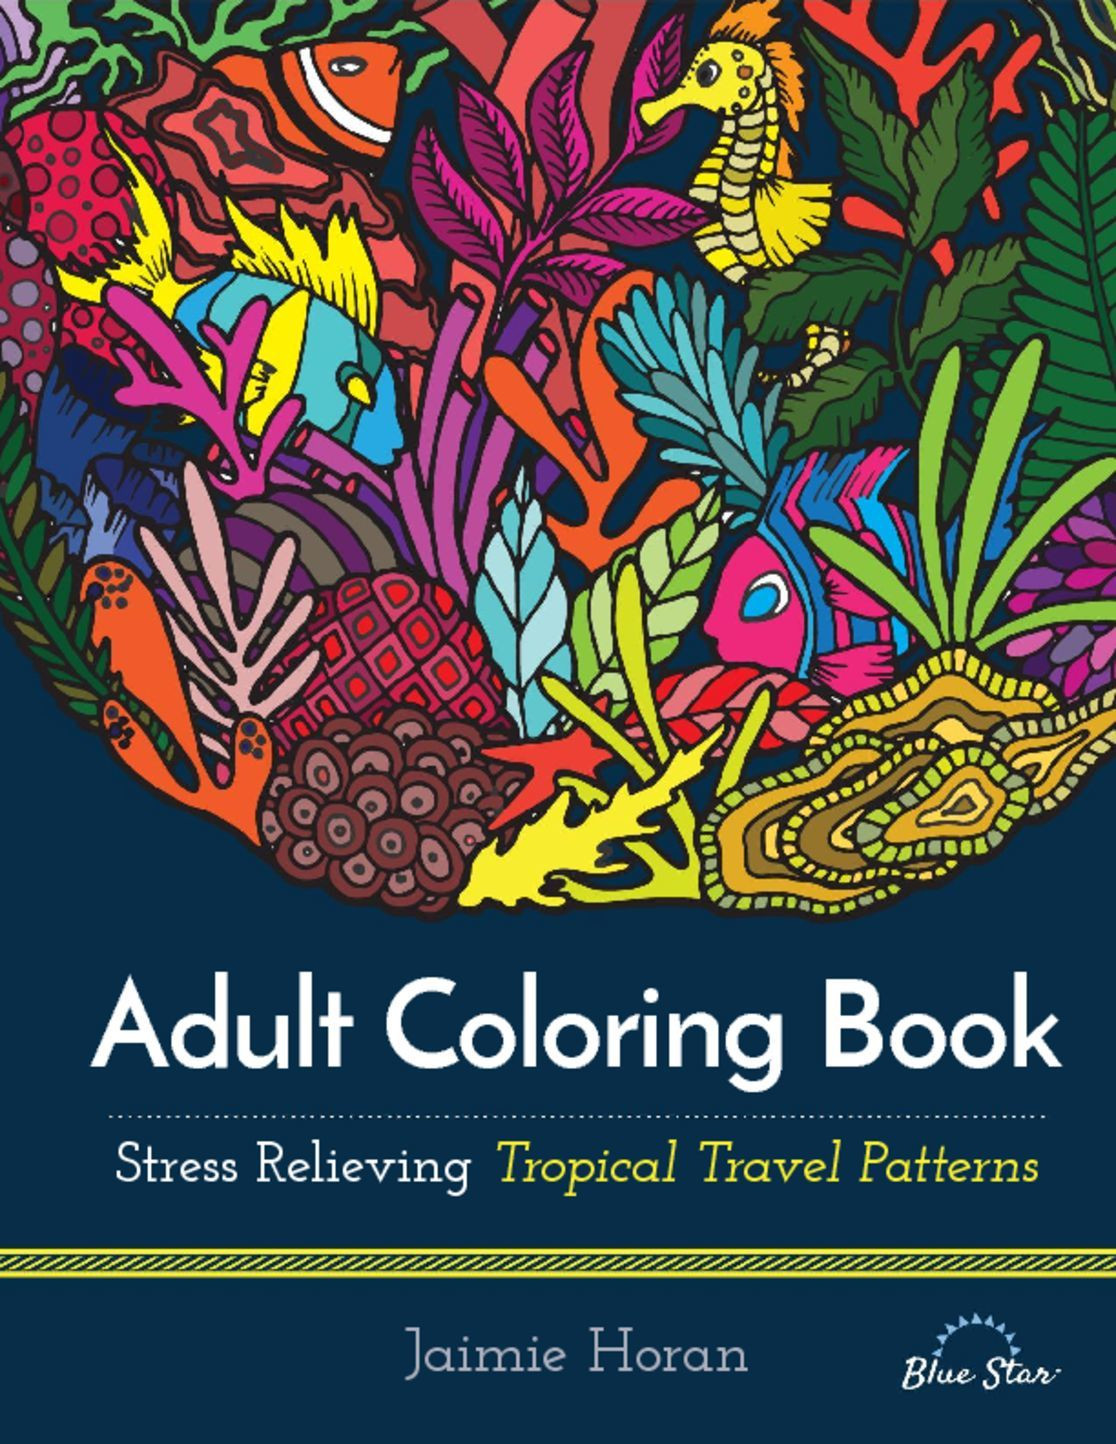 Discount Adult Coloring Books  Adult Coloring Book Stress Relieving Tropical Travel